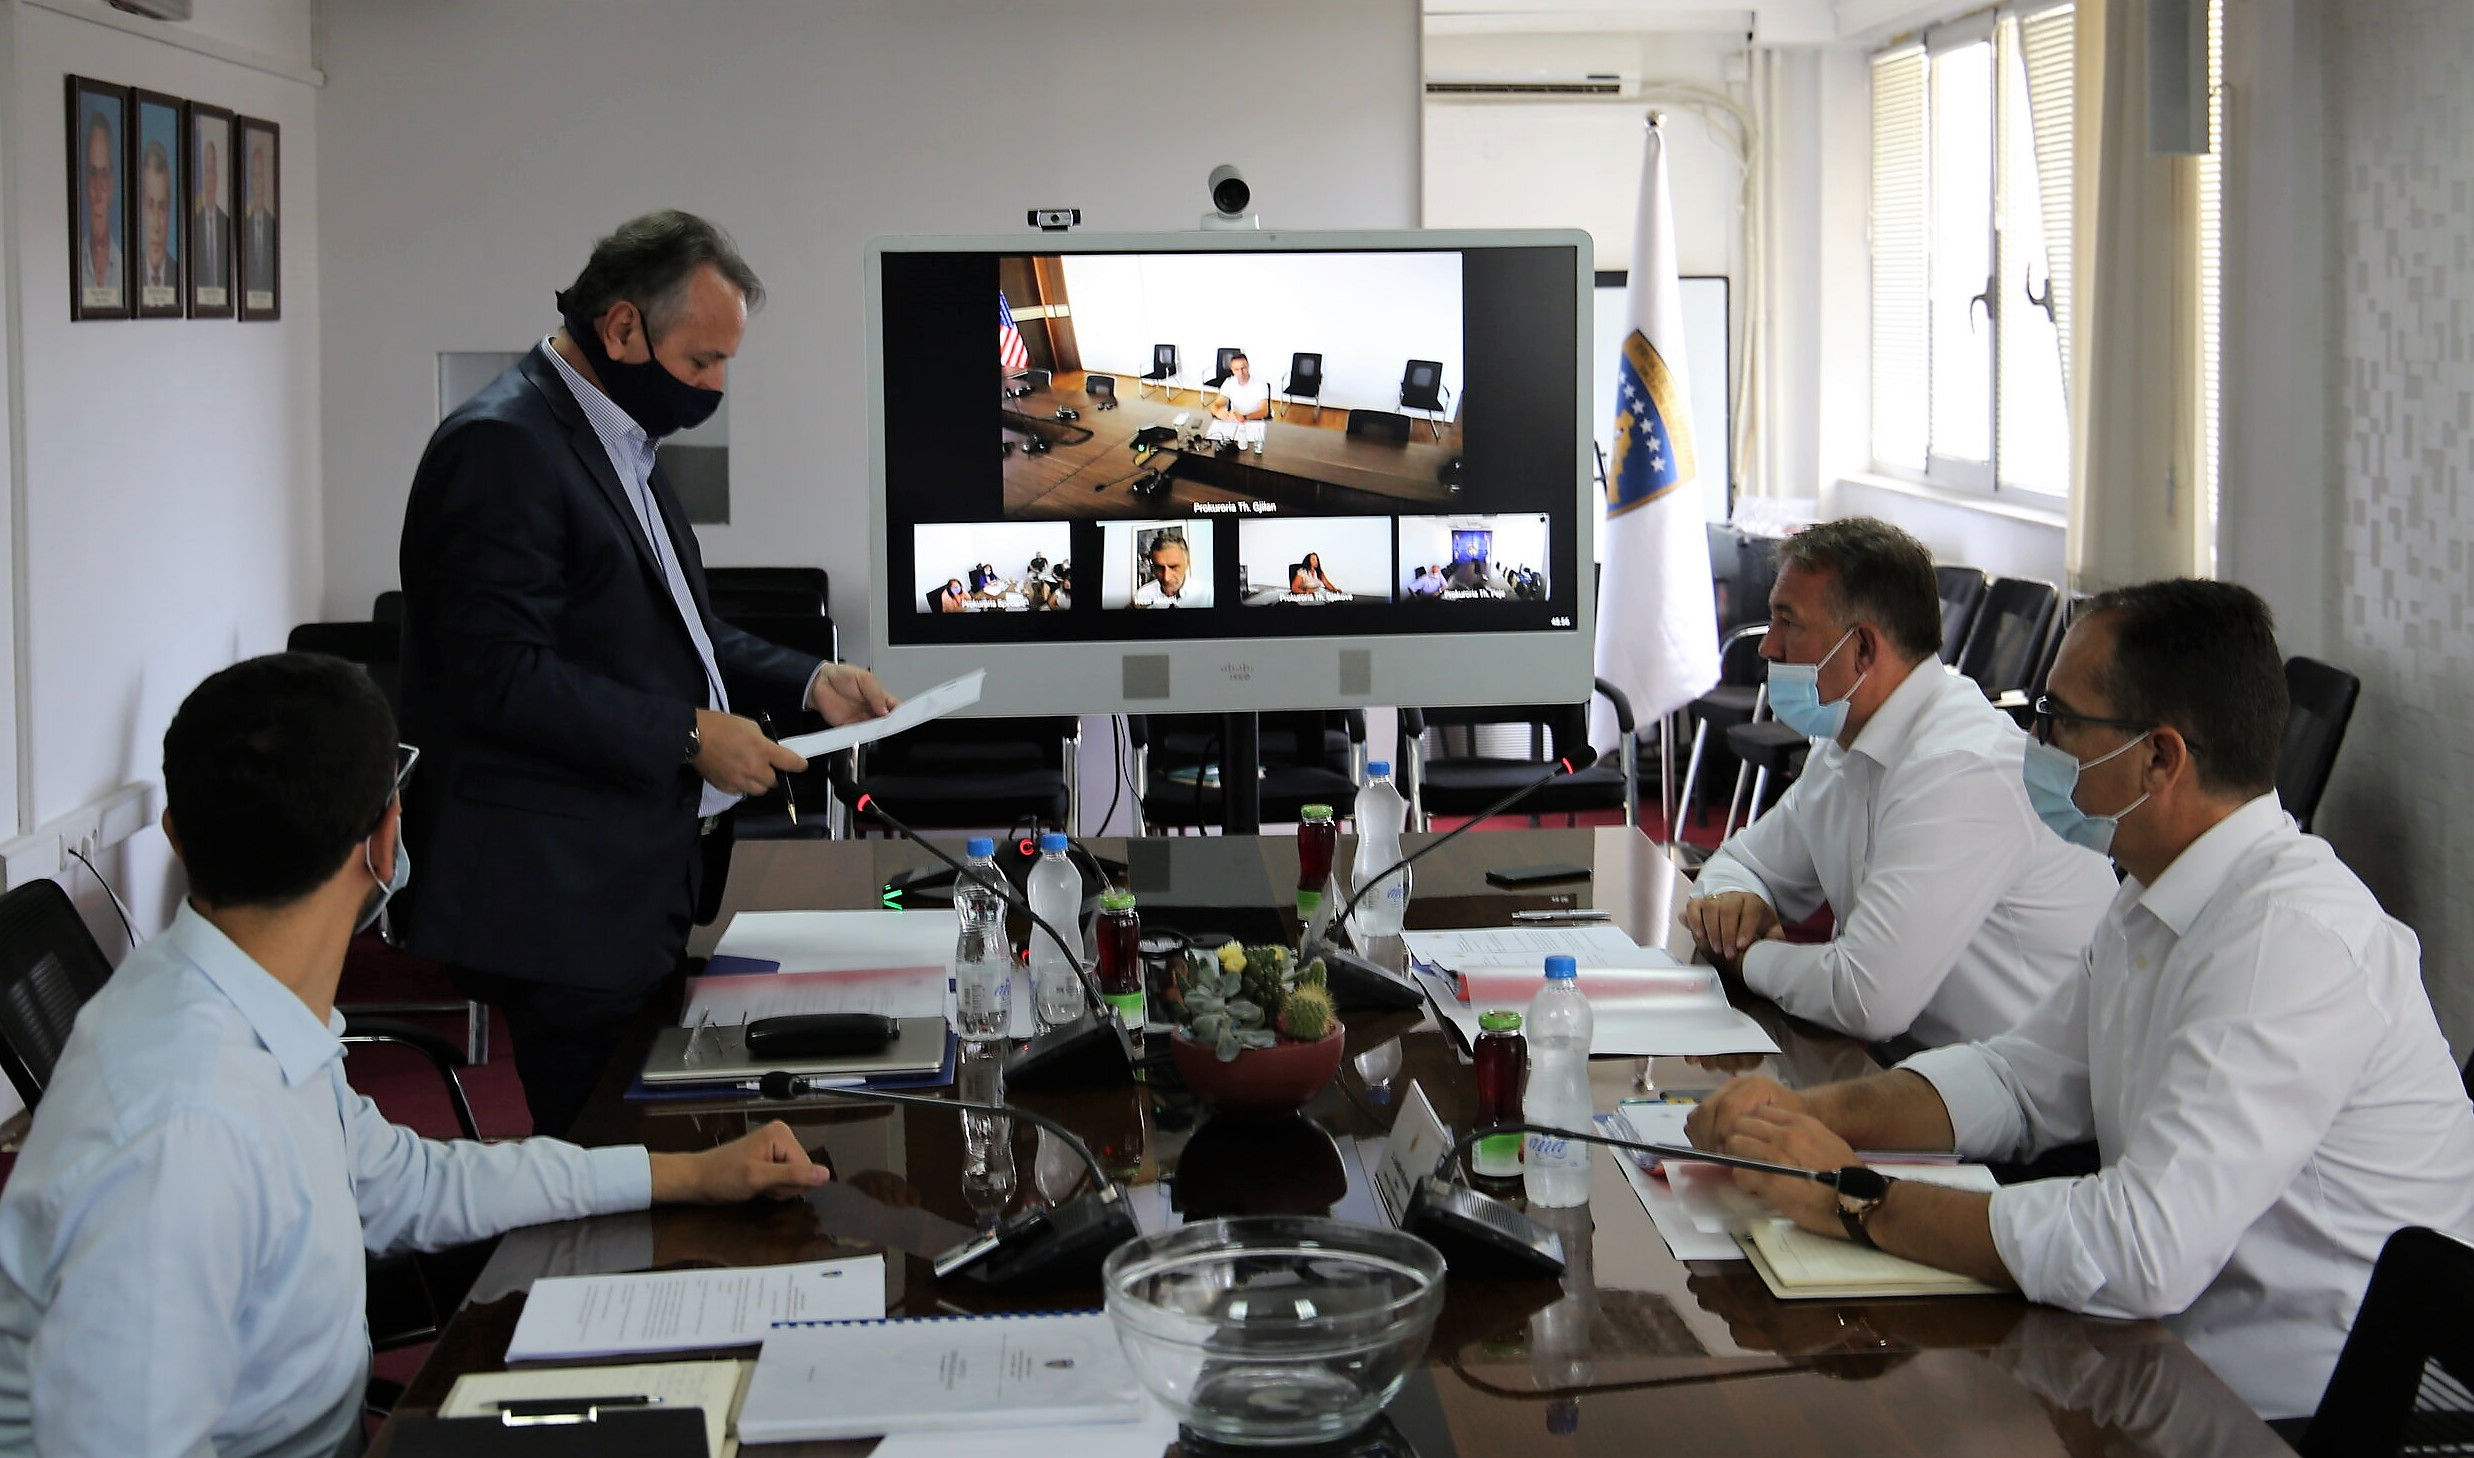 The 184th meeting of the Kosovo Prosecutorial Council is held